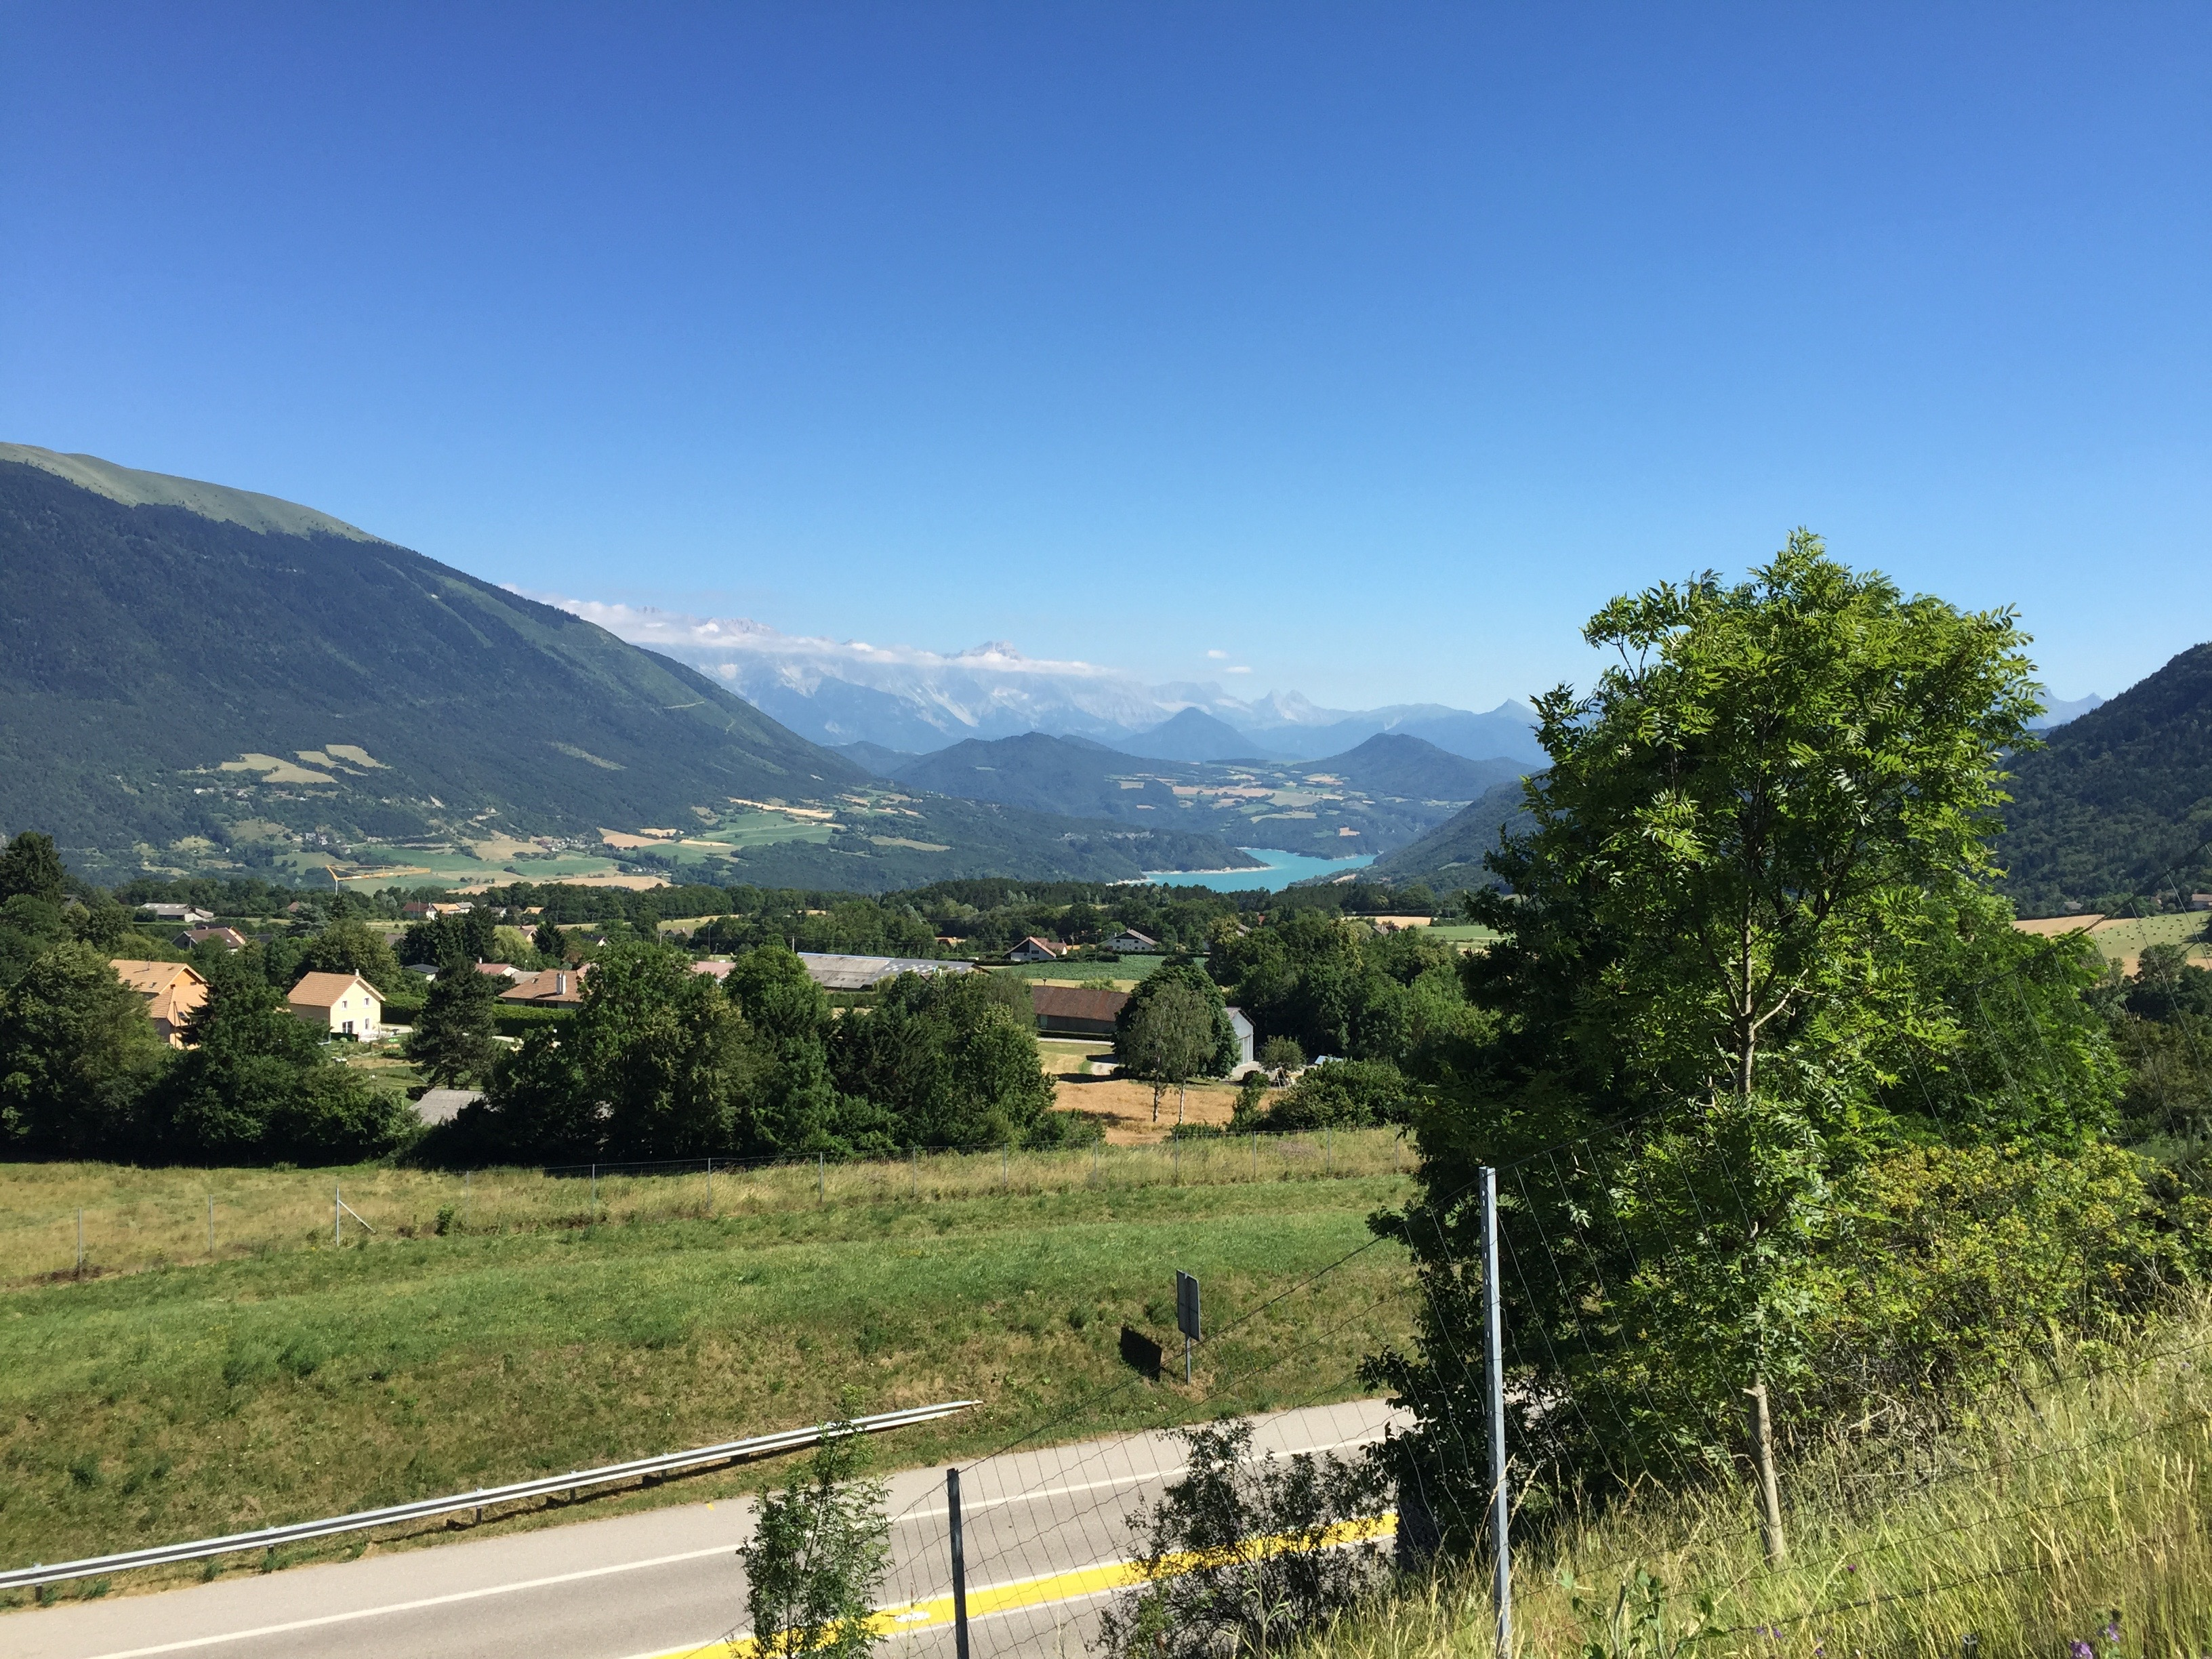 ca 100 km from Grenoble